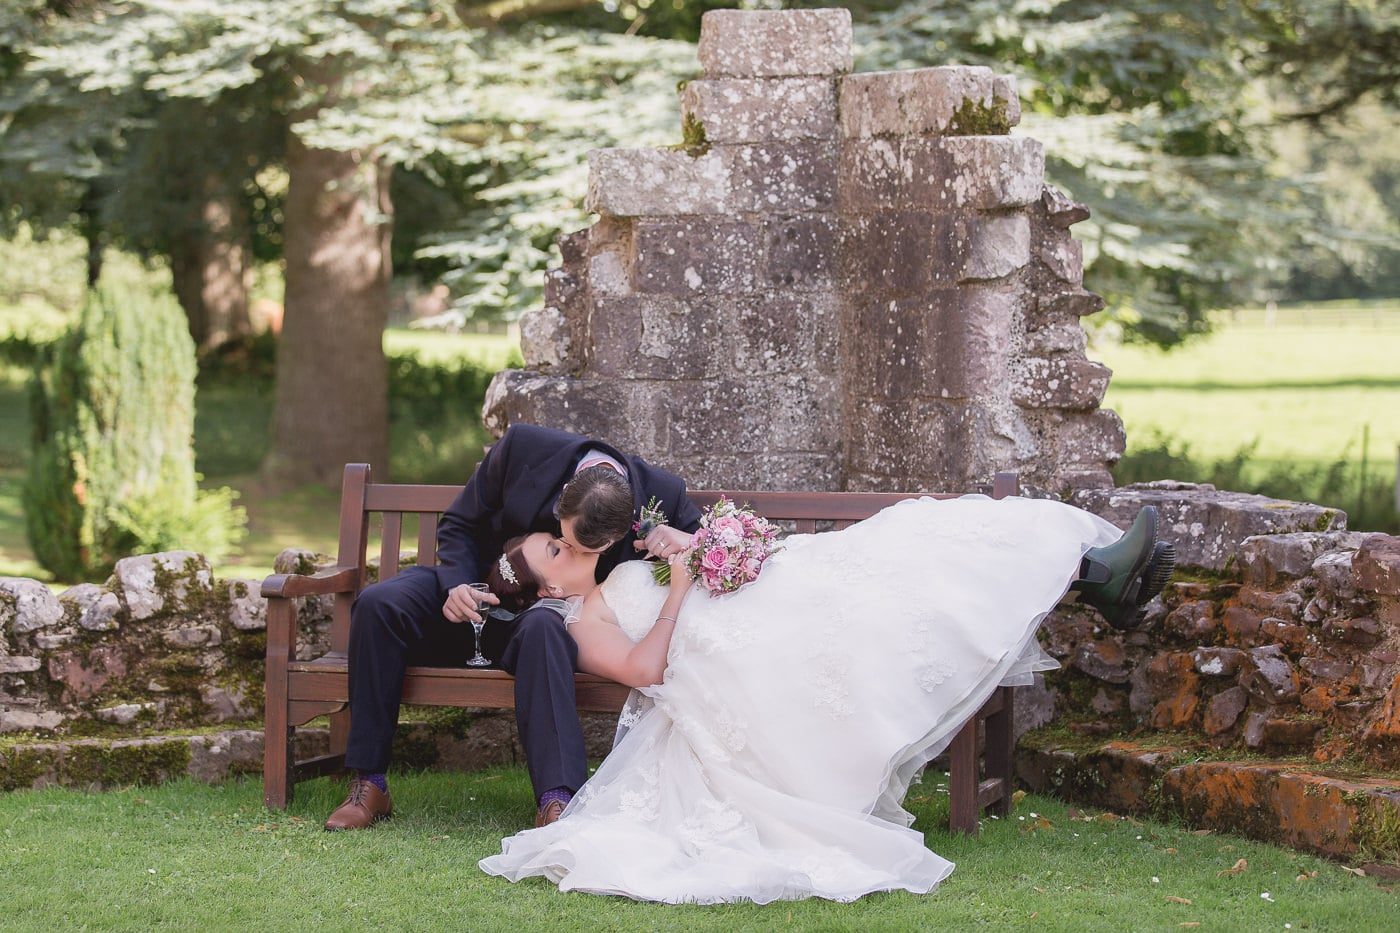 The groom is kissing the bride in the garden